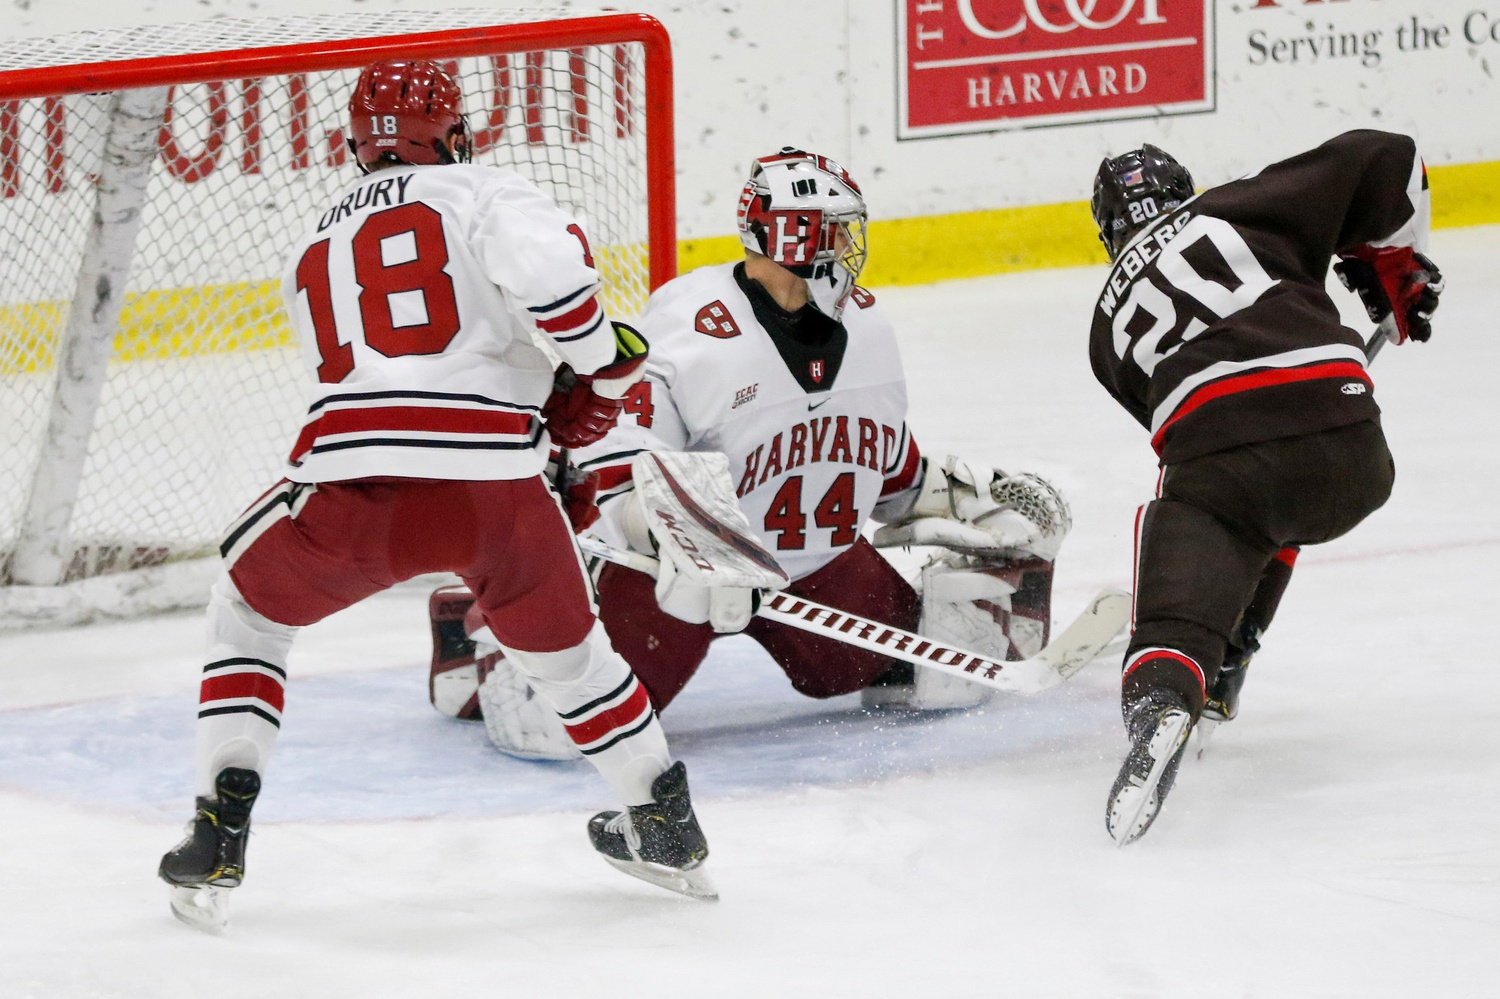 Freshman net-minder Mitchell Gibson held firm on Saturday, ceding just one goal en route to a .963 save percentage.